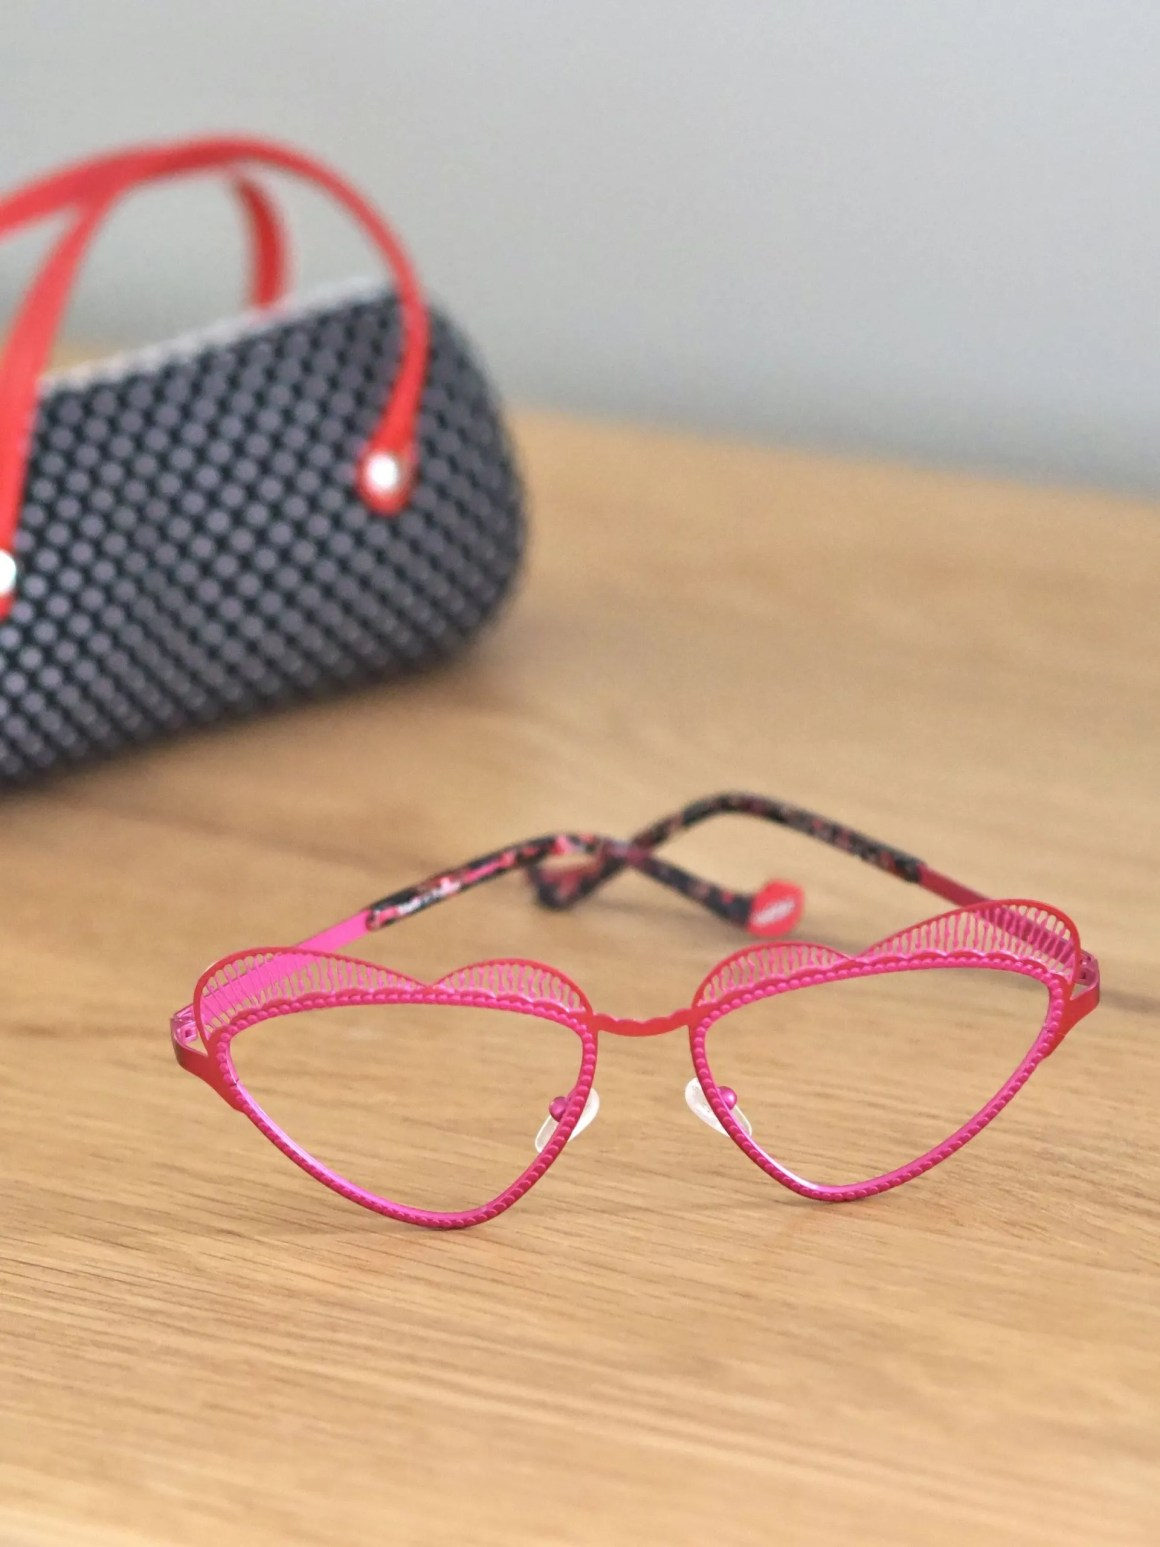 Heart shaped spectacles